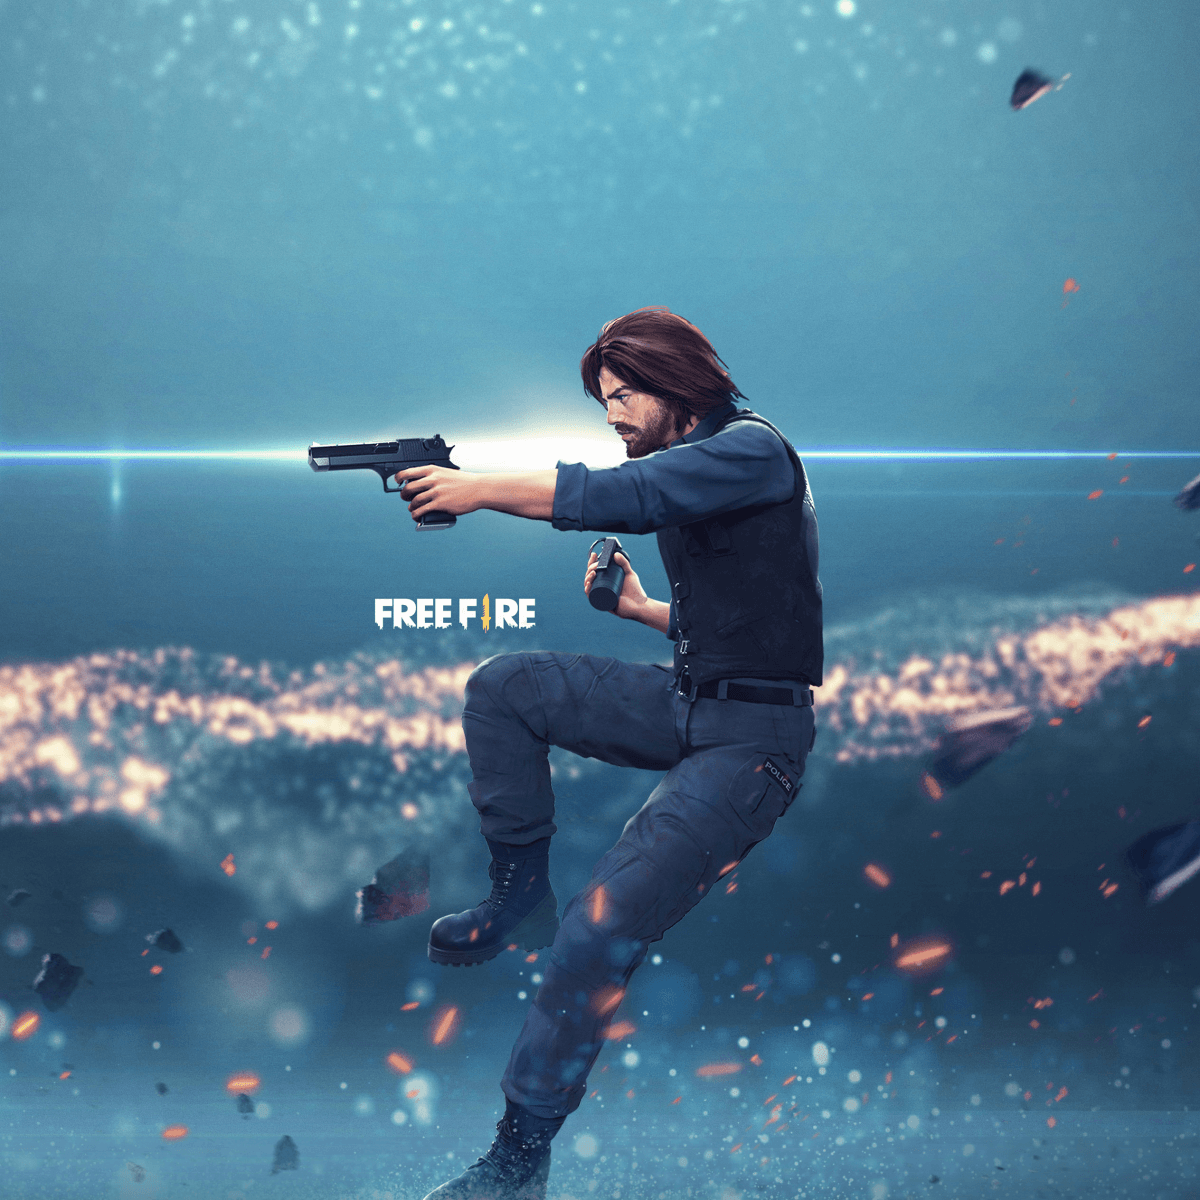 Free Fire Hd Wallpapers Wallpaper Cave